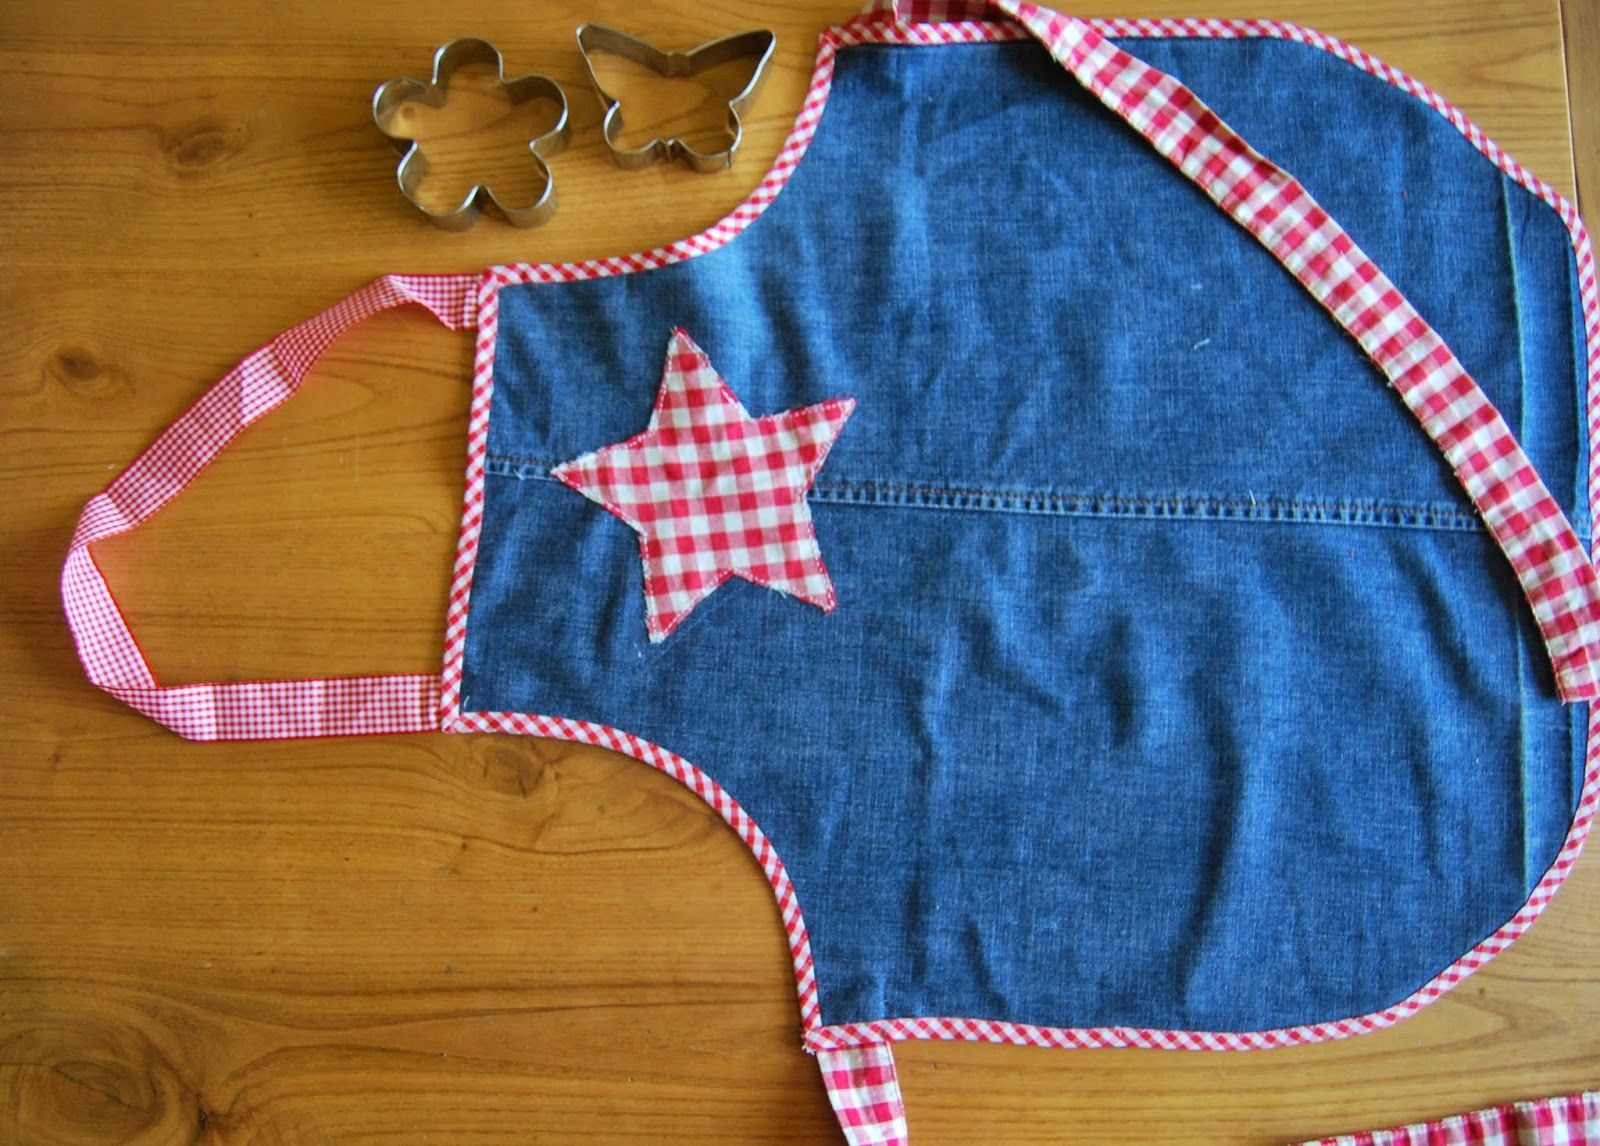 Reciclando vaqueros gastados: un delantal para niños handmade. Handmade apron for kids made from old jeans.